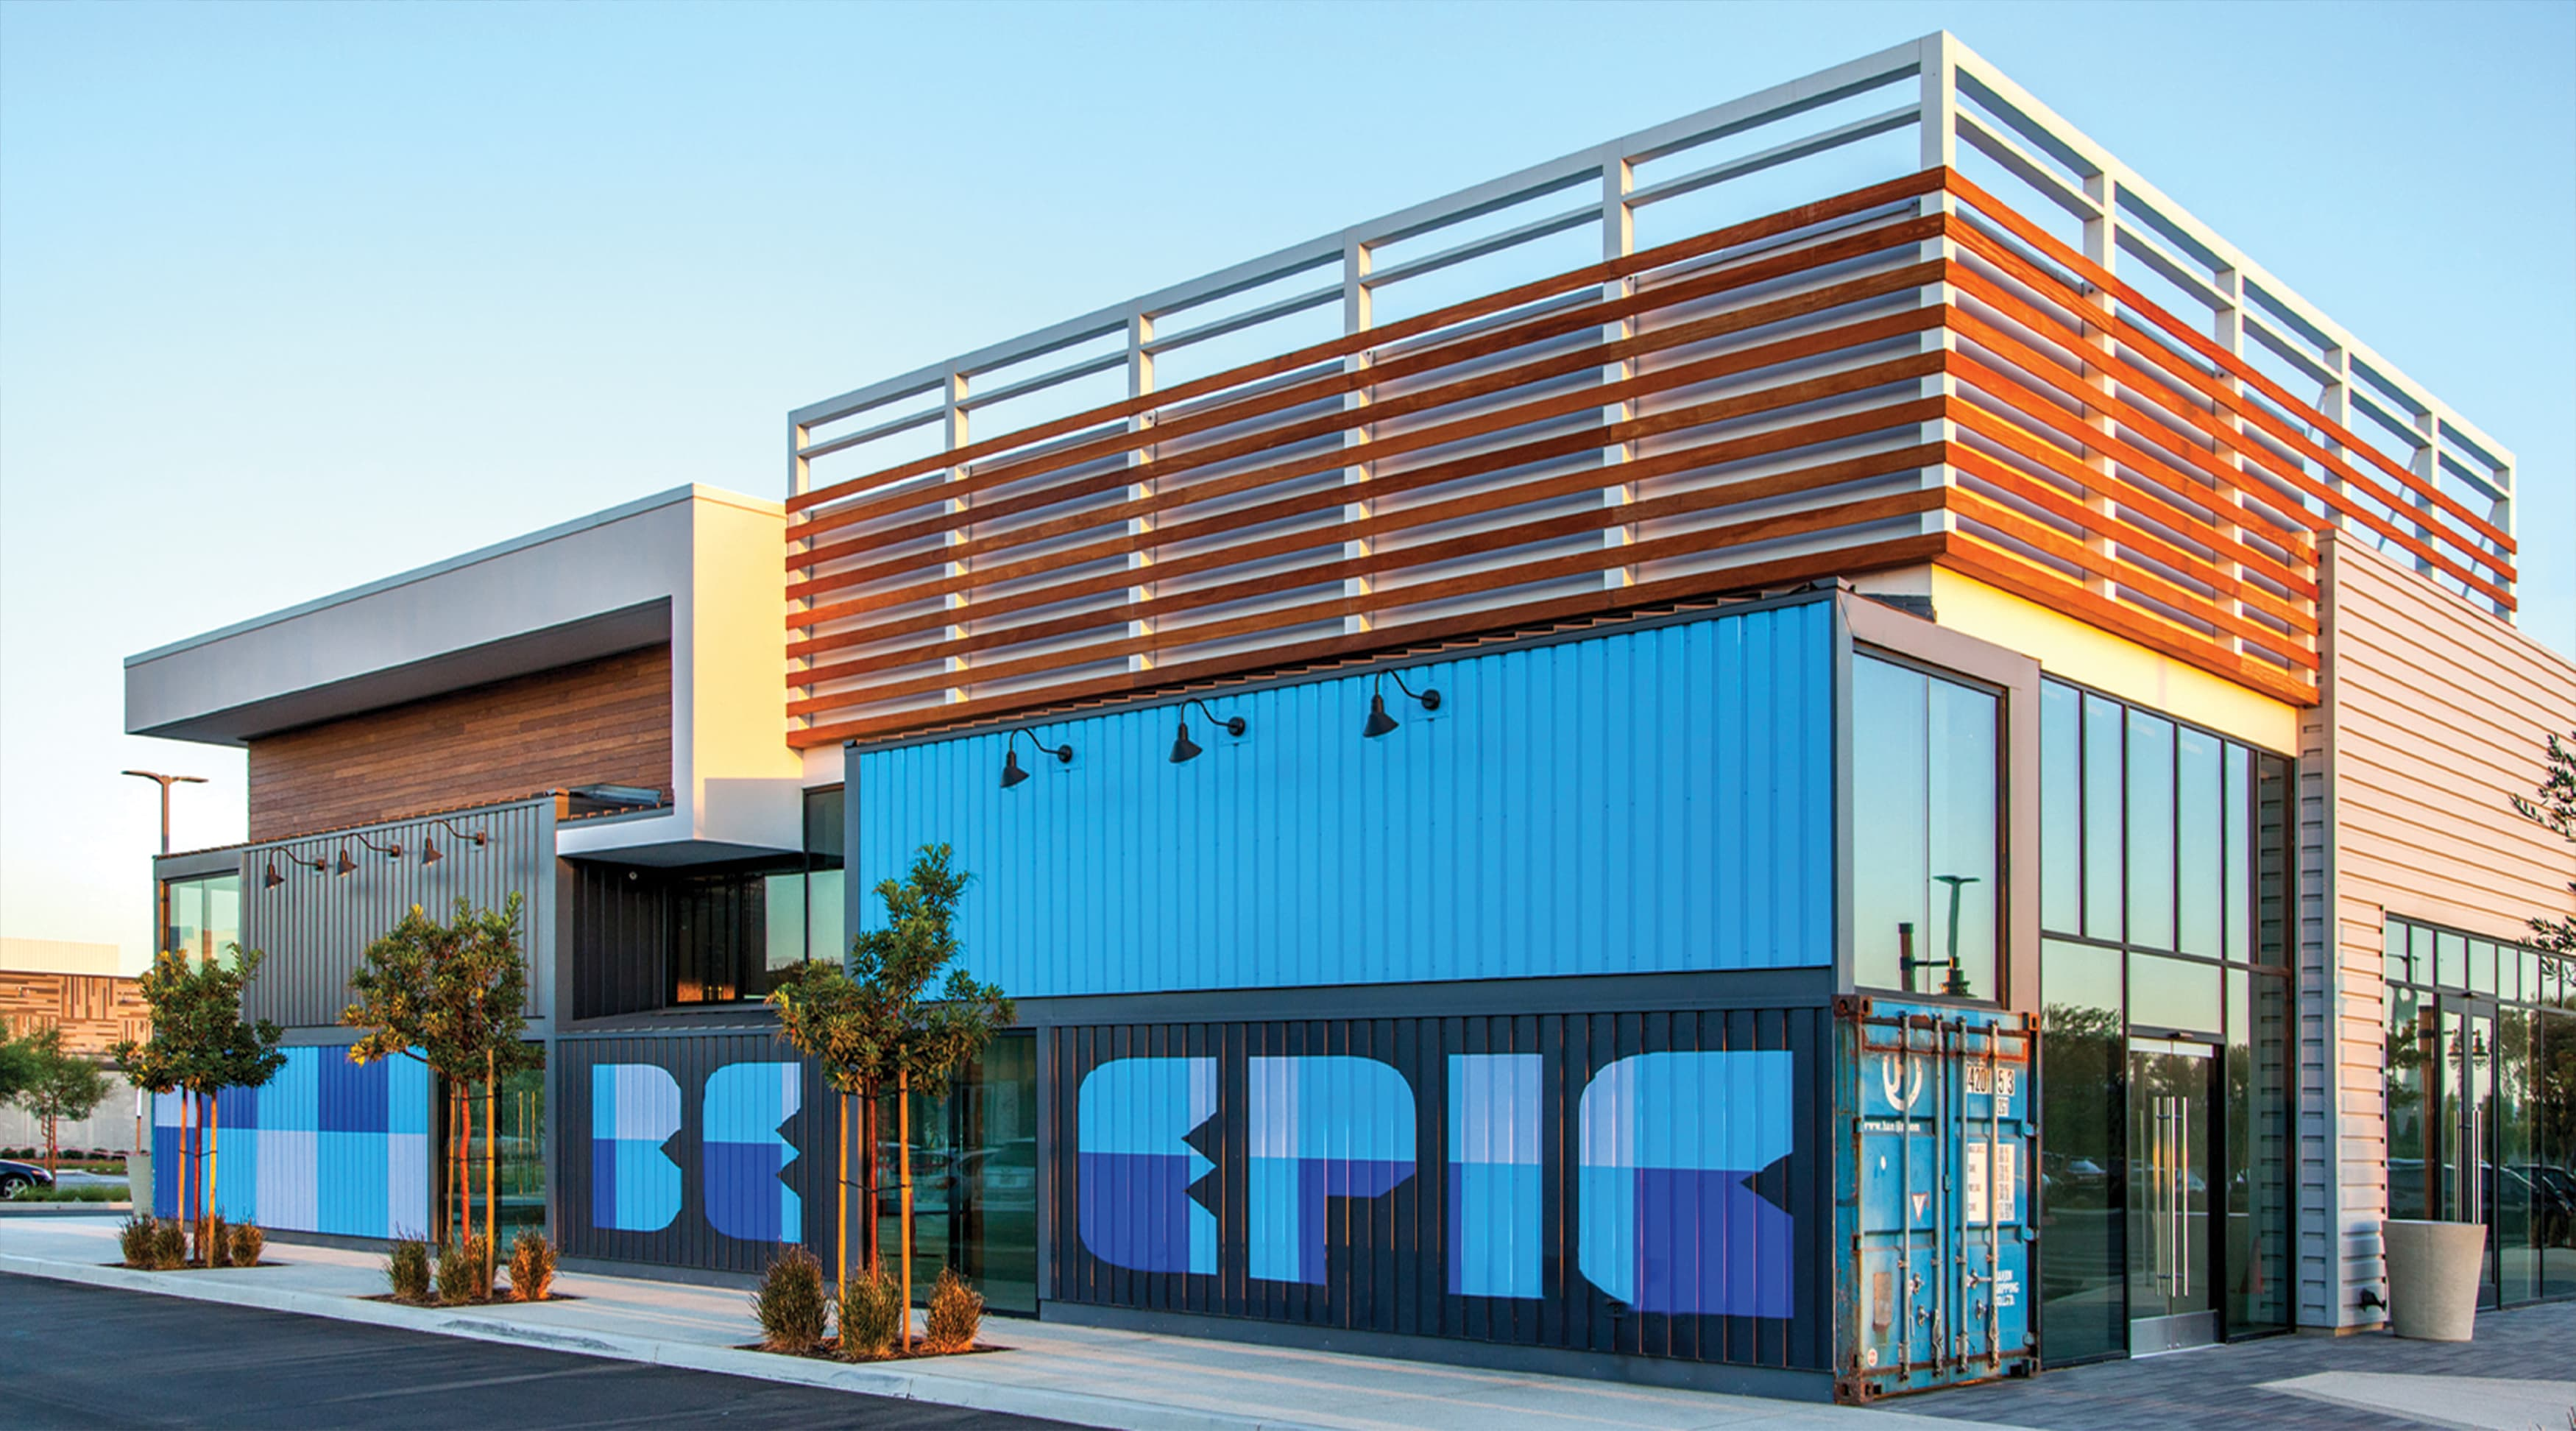 Long Beach Exchange Retail Design Project Environmental Graphic Design and Placemaking Graphic Architecture